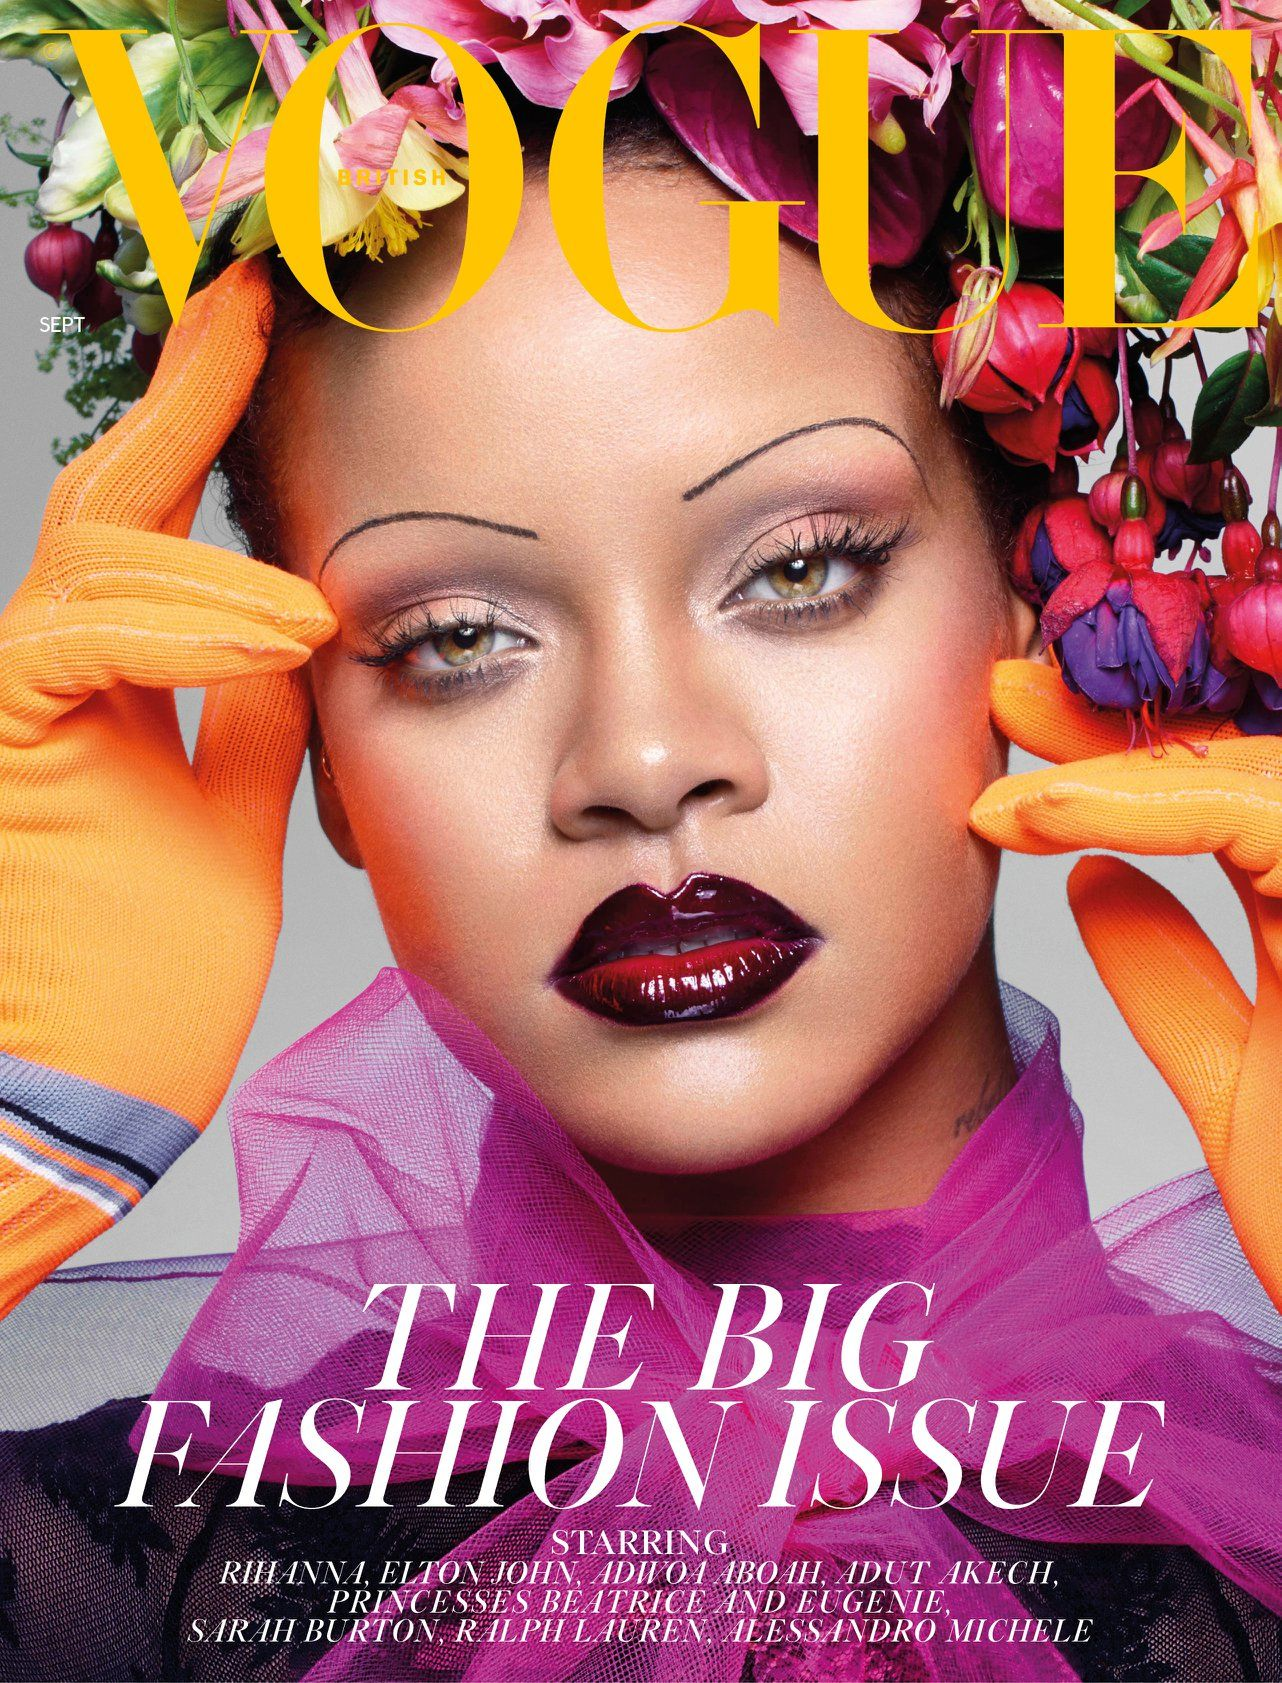 What the fashion? Fenty Beauty boss Rihanna just endorsed Thin Eyebrows on the cover of British Vogue Sept Issue